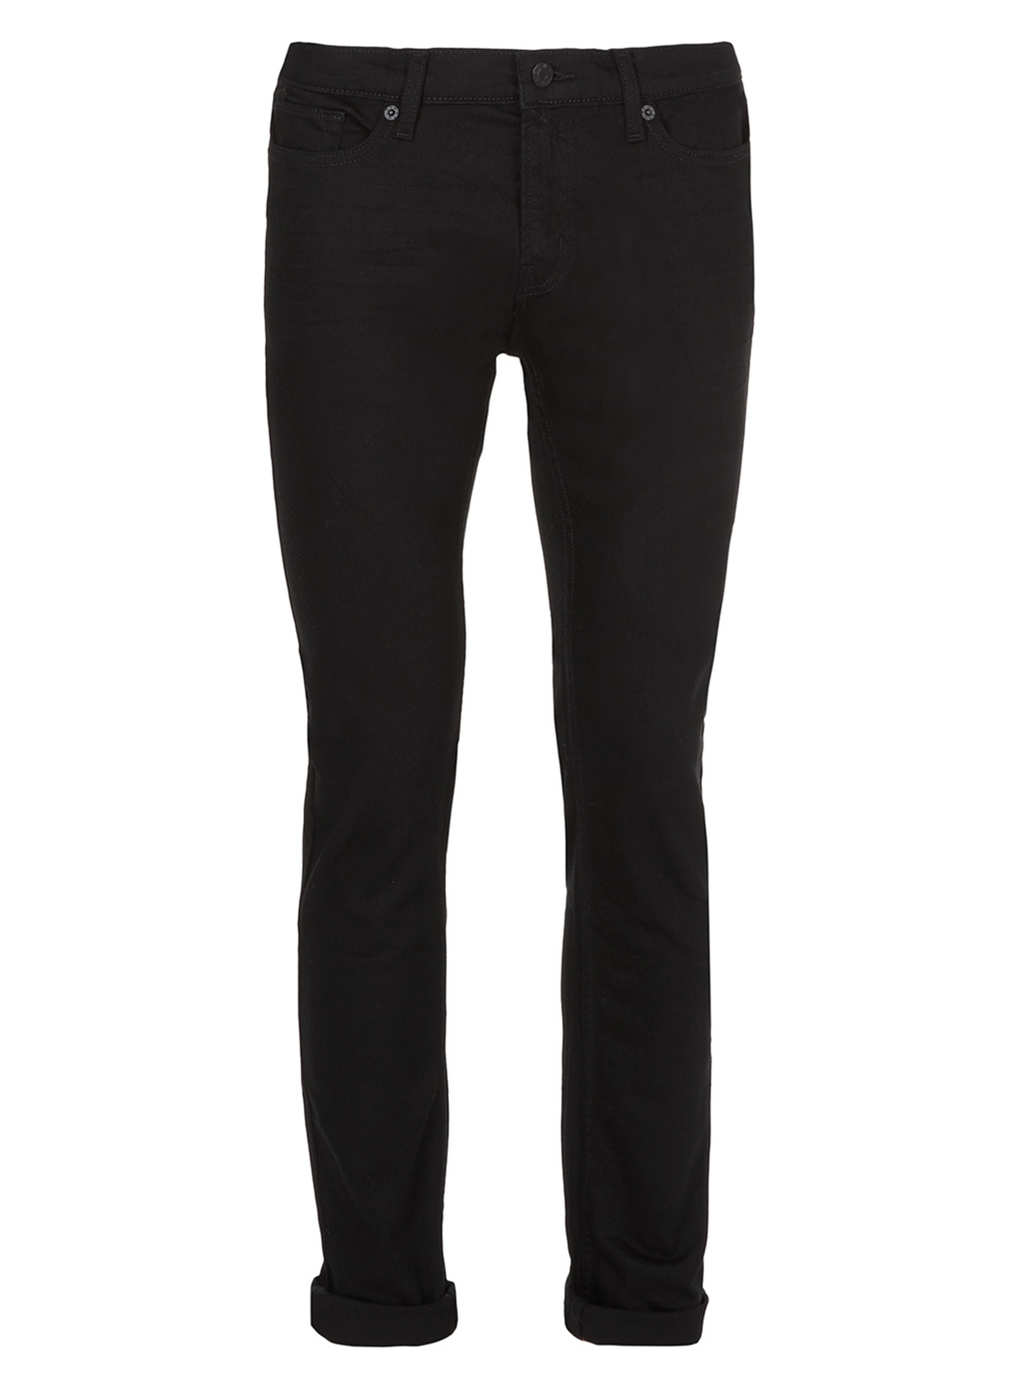 Find great deals on Mens Black Jeans at Kohl's today! Sponsored Links Outside companies pay to advertise via these links when specific phrases and words are searched. Clicking on these links will open a new tab displaying that respective companys own website. Men's RawX Slim-Fit Moto Stretch Jeans. sale. $ Regular $ Men's.